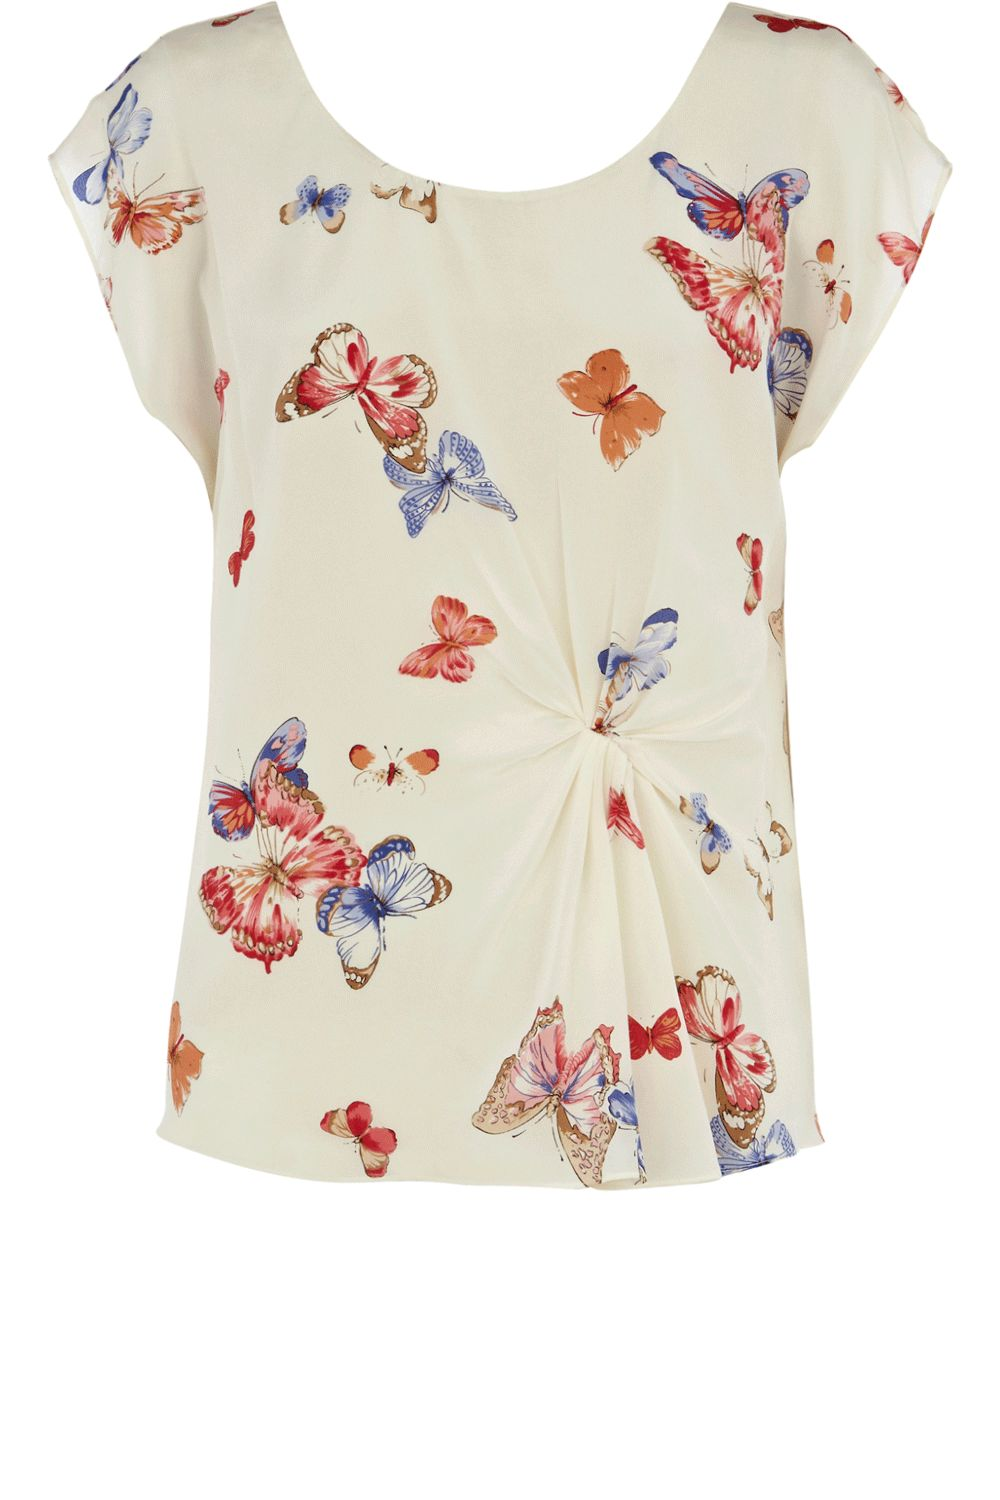 Find great deals on eBay for butterfly tops. Shop with confidence.